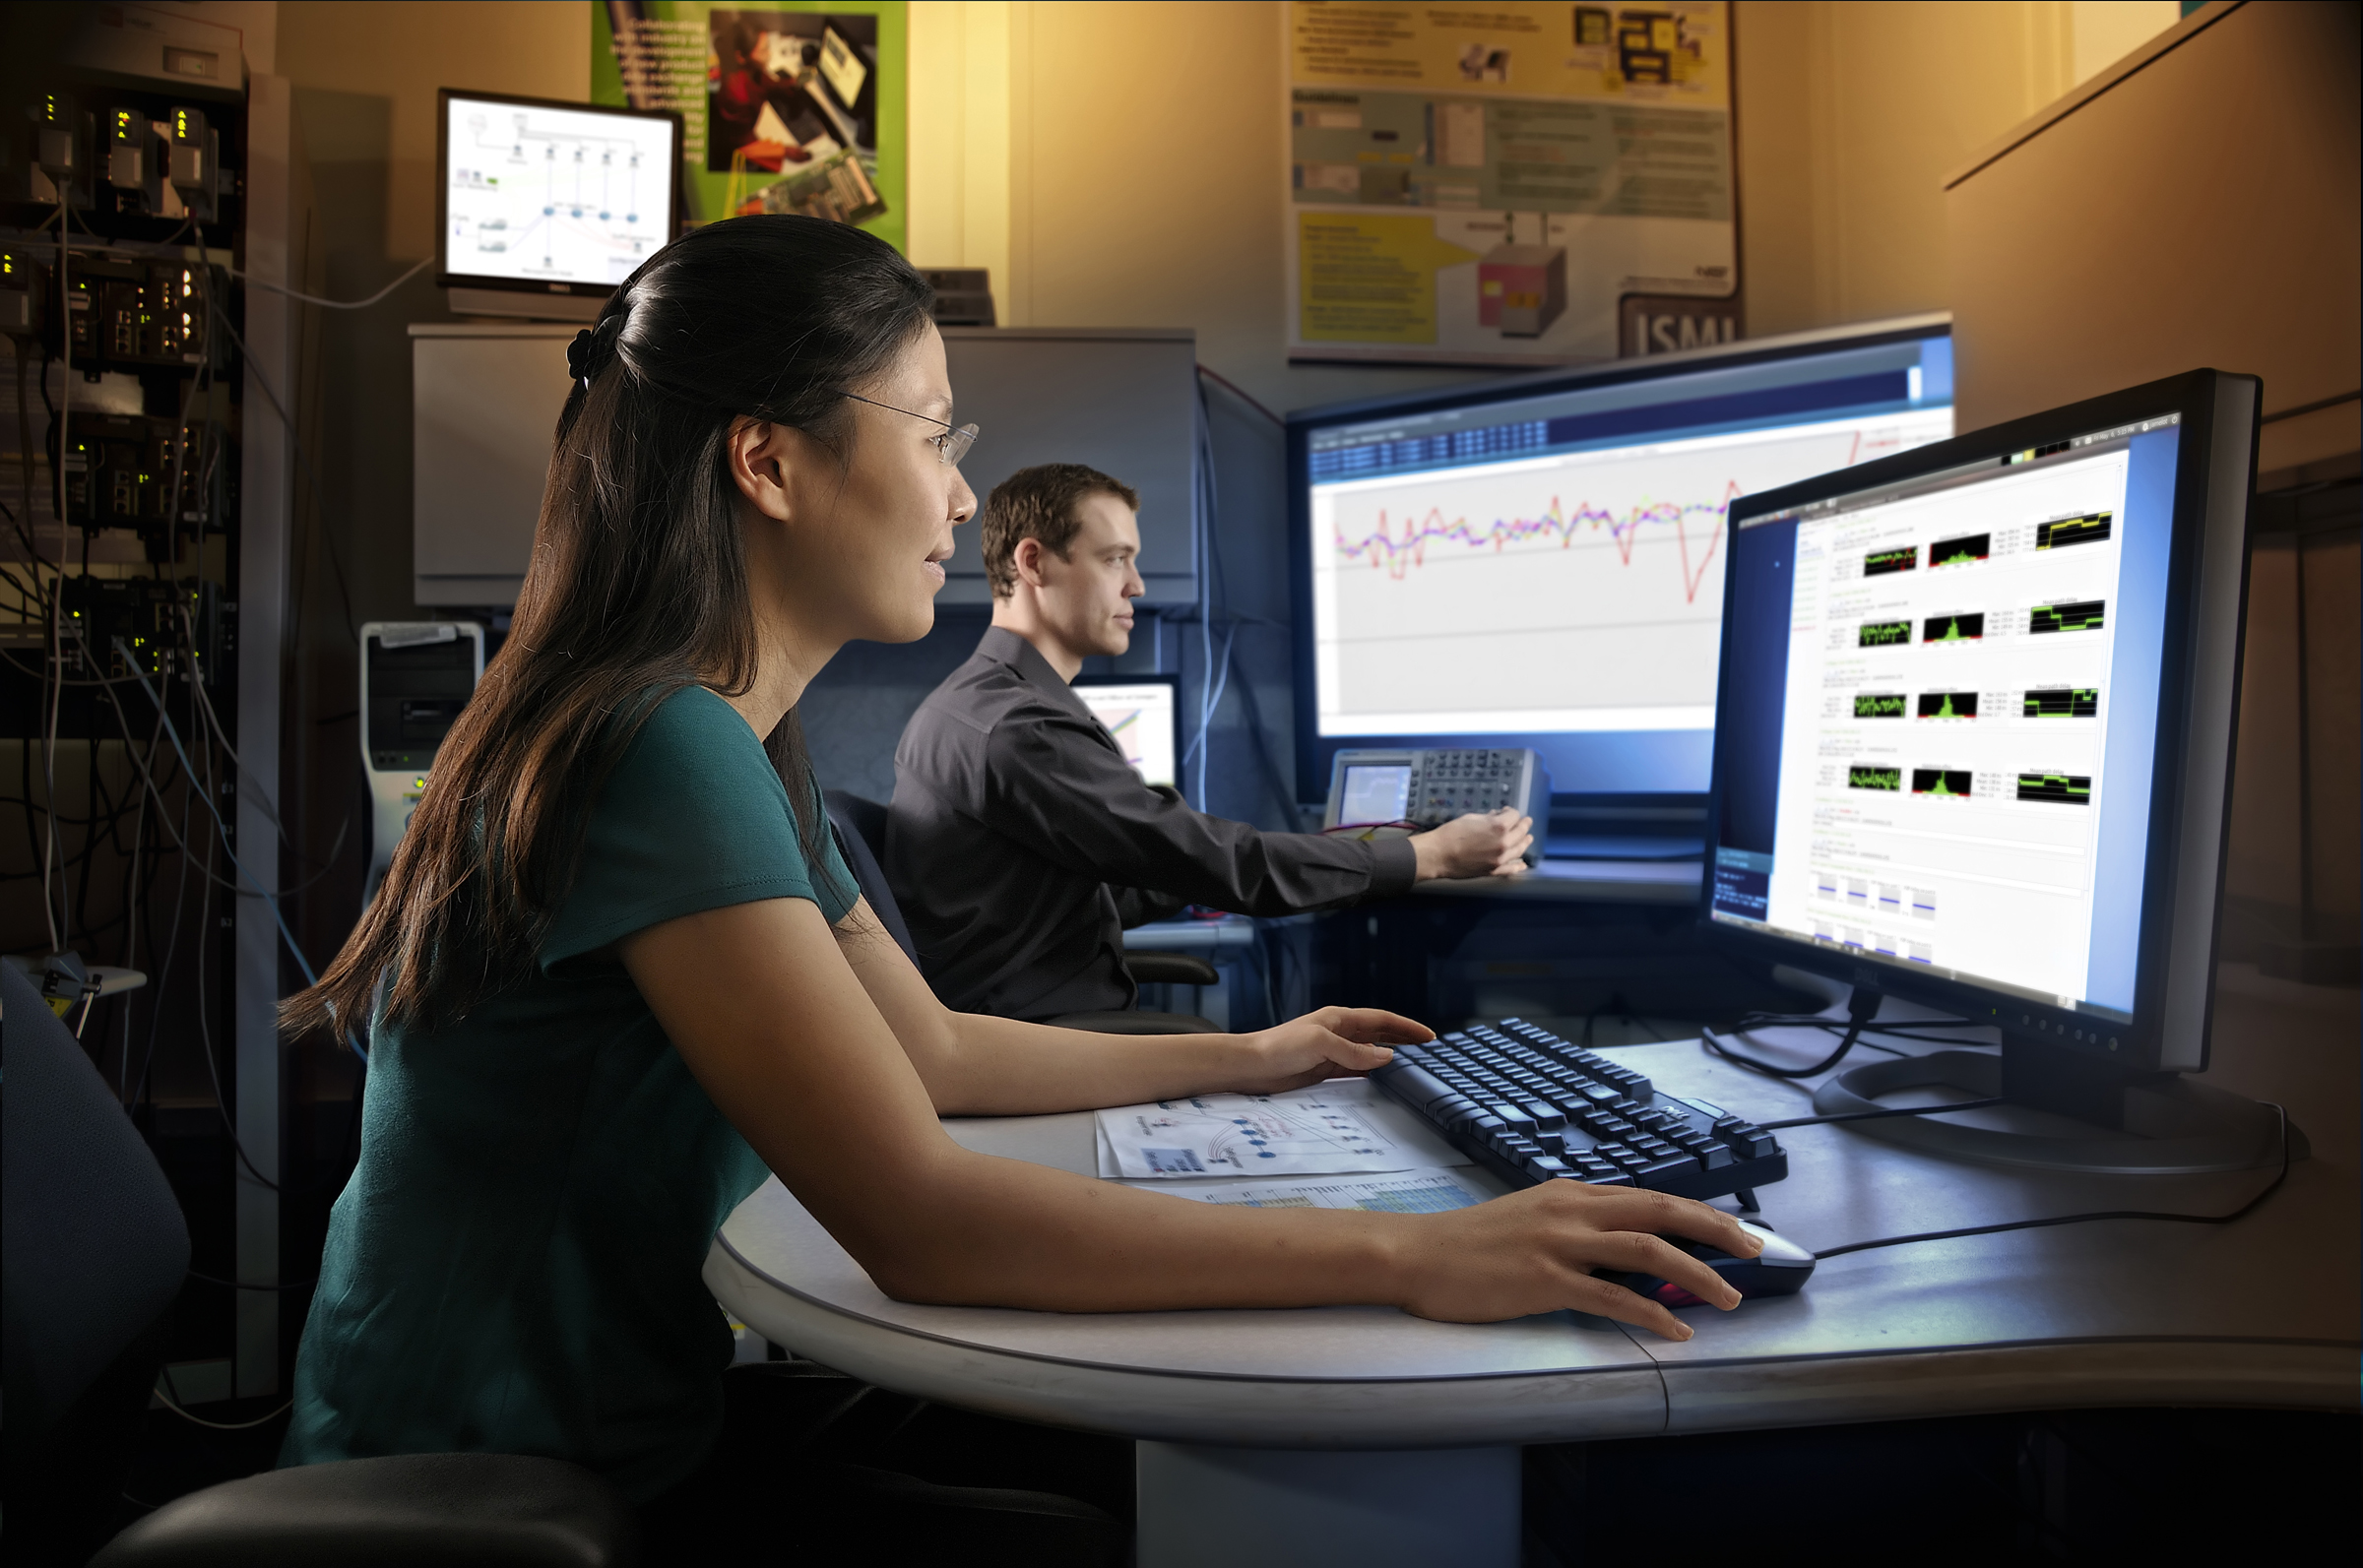 Fy15 Budget Advanced Cyber Physical Systems For National Priorities 7 5 Million Nist